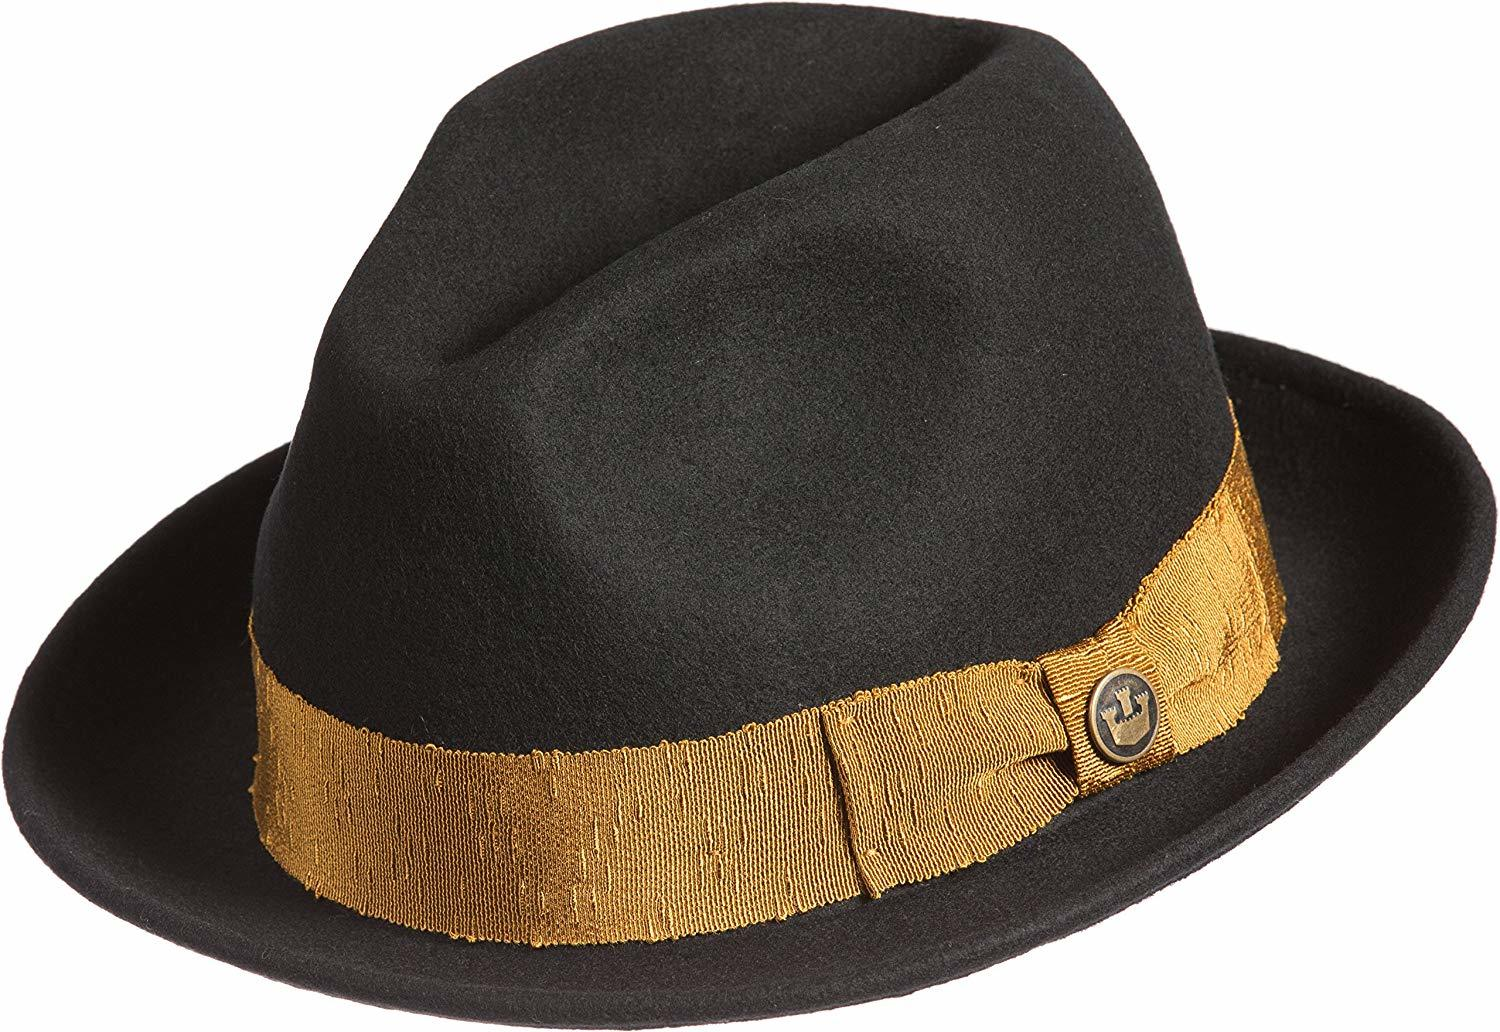 37aff9892 Goorin Brothers Men's Mr. Driver Wool Fedora Hat w Grosgrain Band